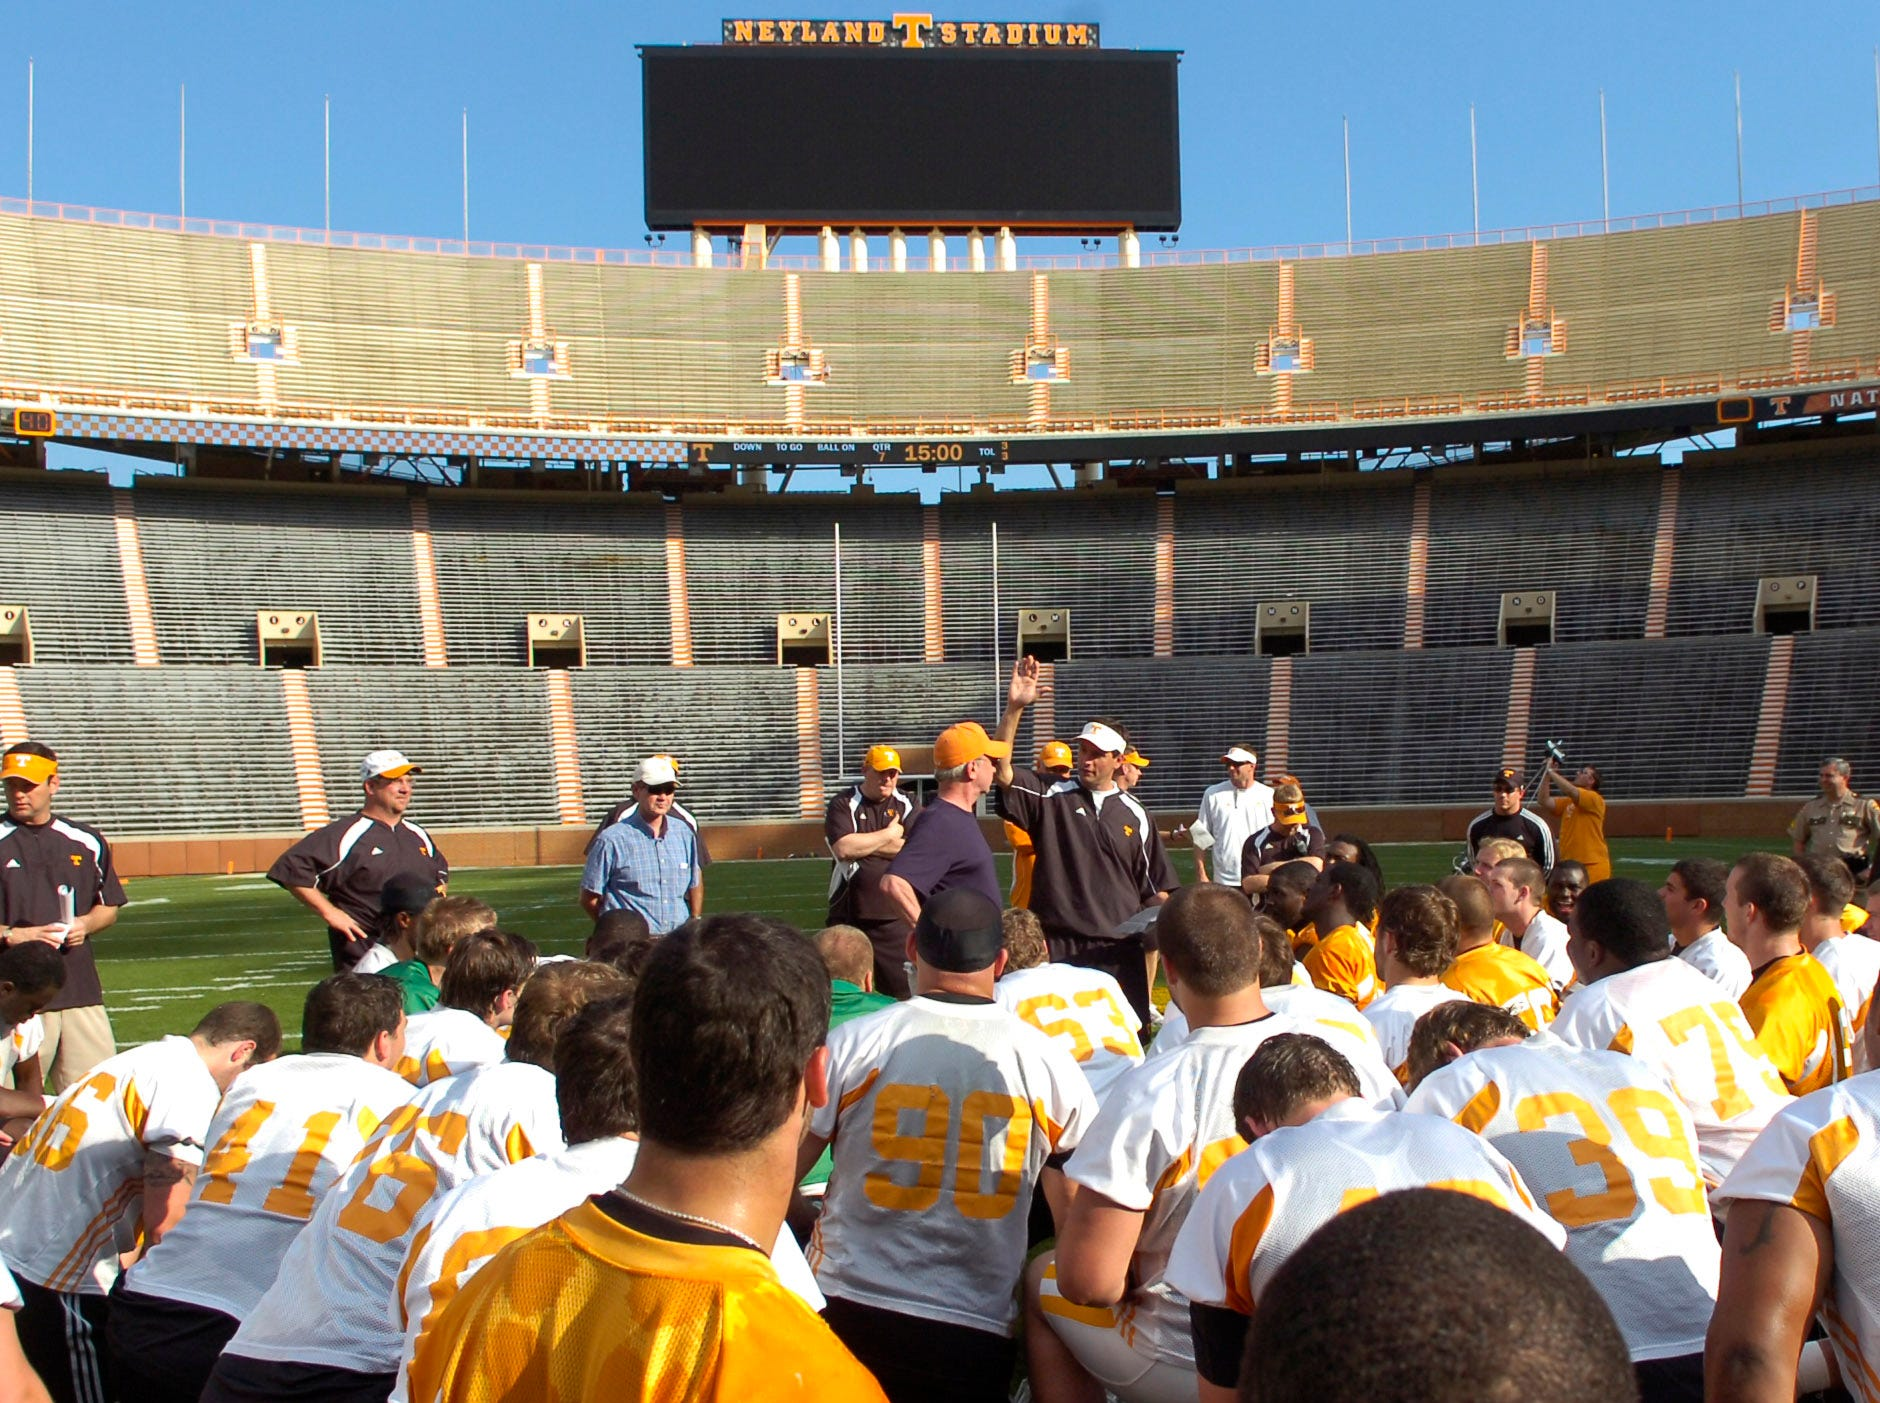 UT head coach Derek Dooley introduces KNS sportswriter John Adams to the team during practice at Neyland Stadium on April 15, 2010.